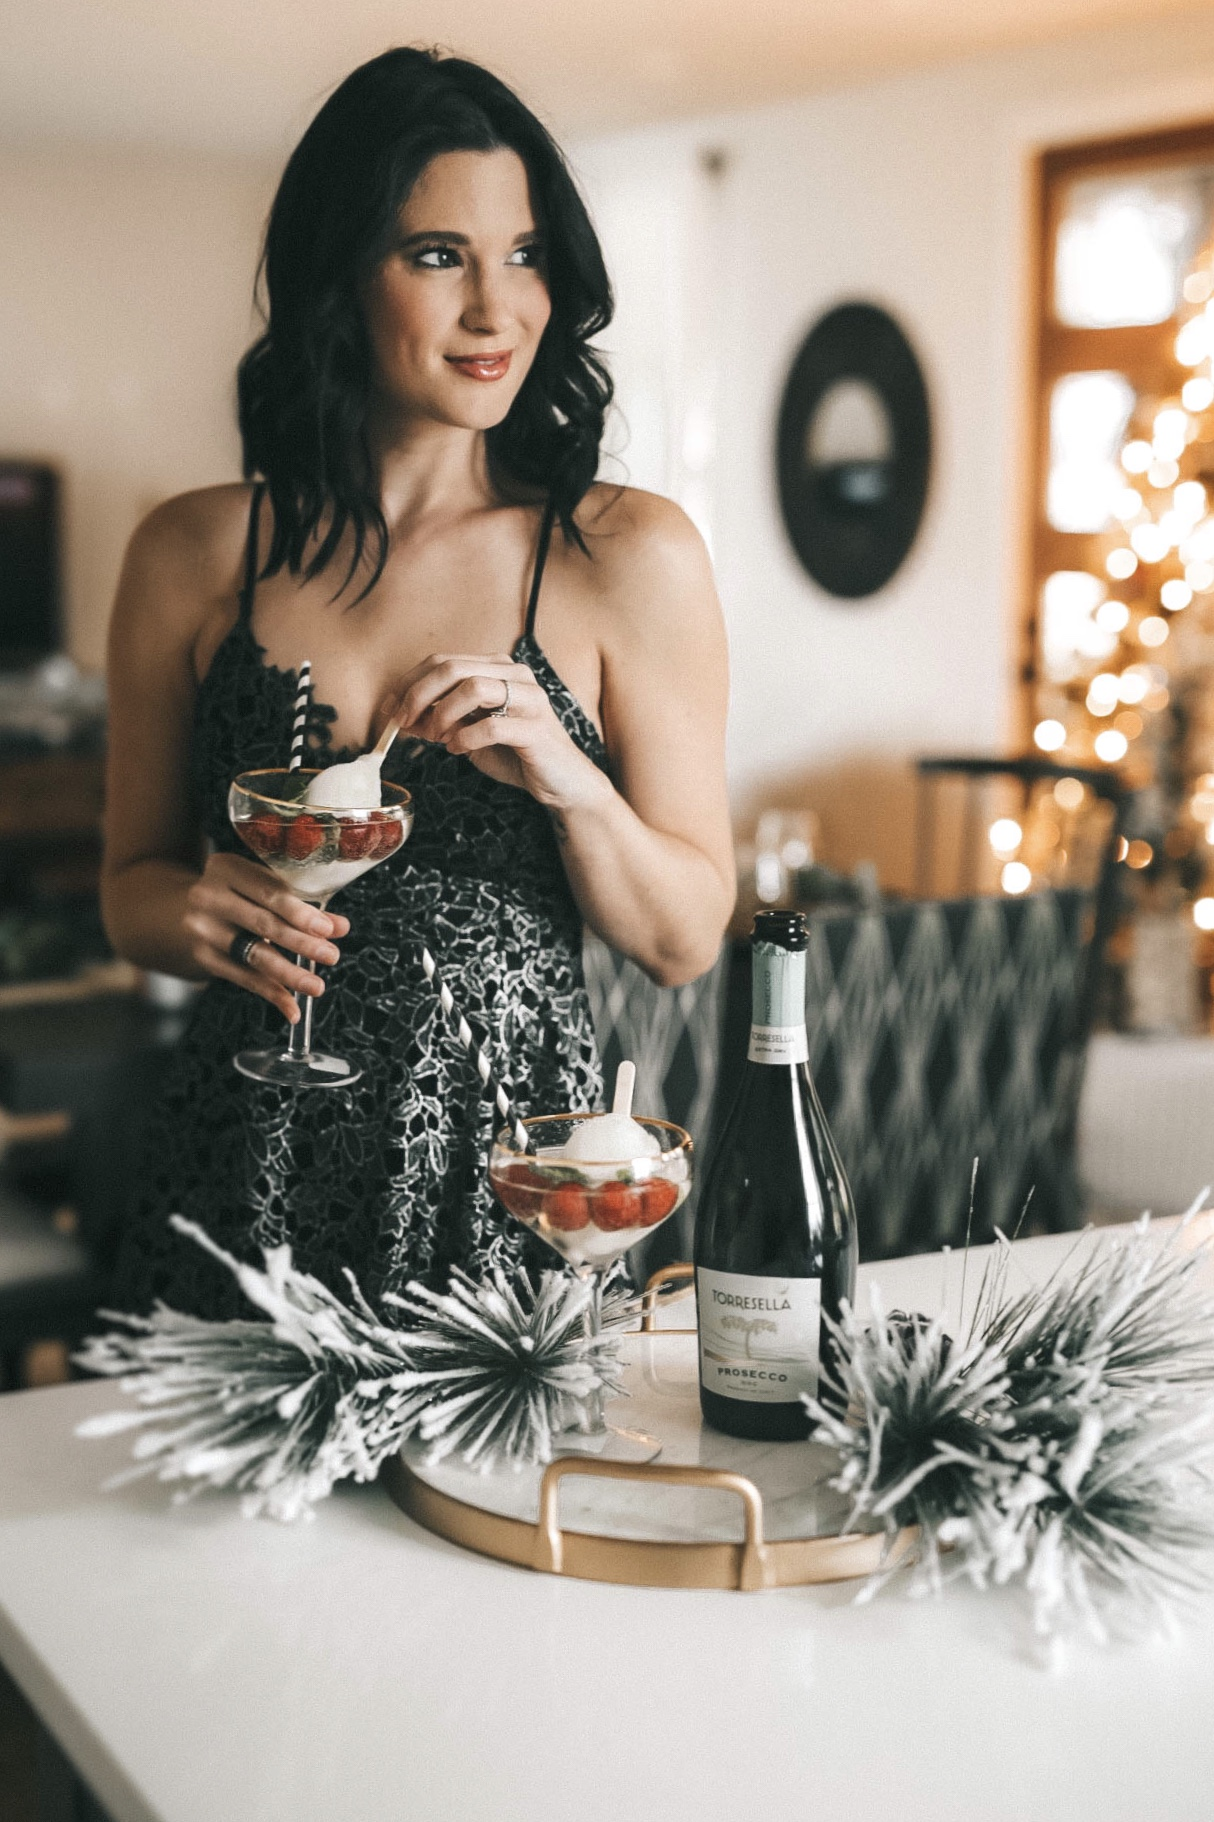 {2 Delicious and Festive Holiday Party Cocktails Recipes}